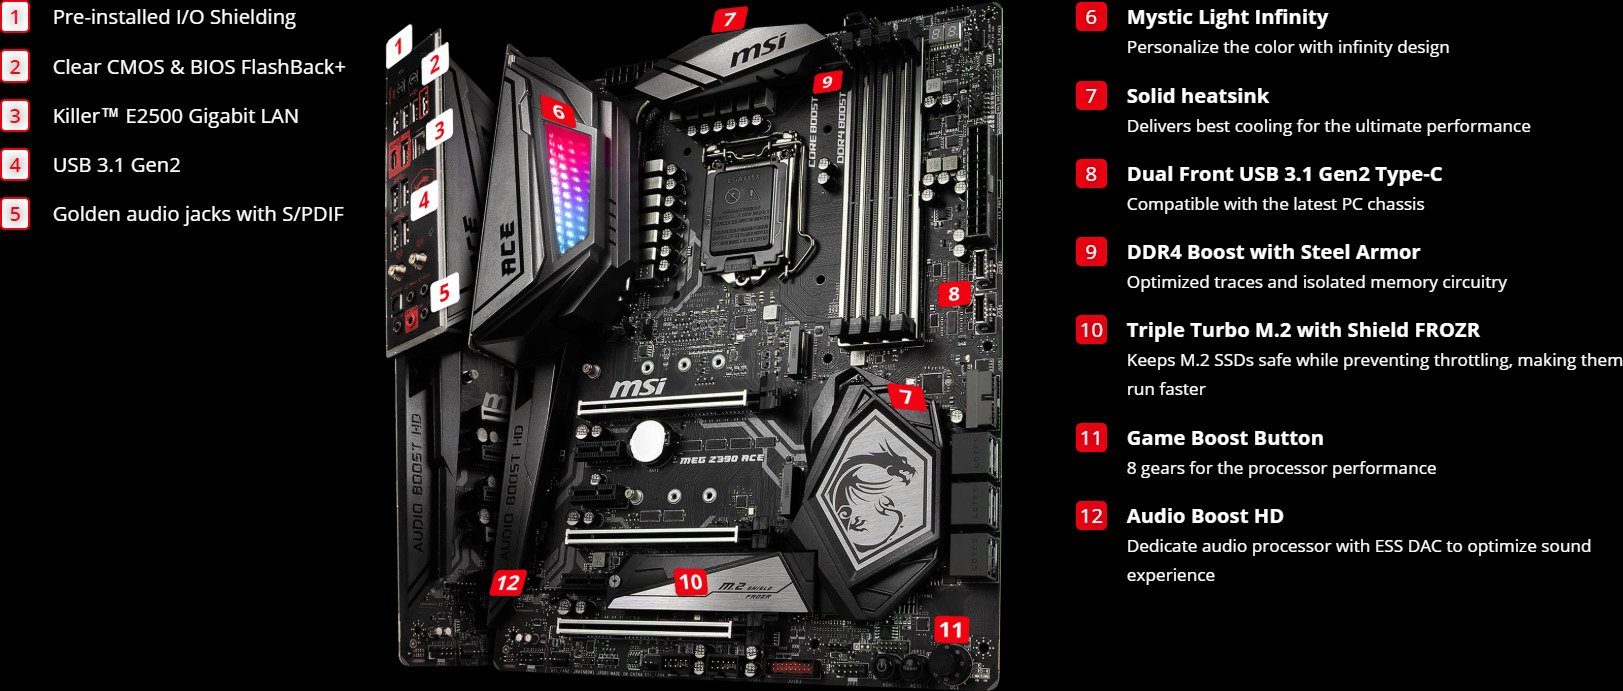 MSI MEG Z390 ACE Motherboard Review - Very Nice! - ThePCEnthusiast